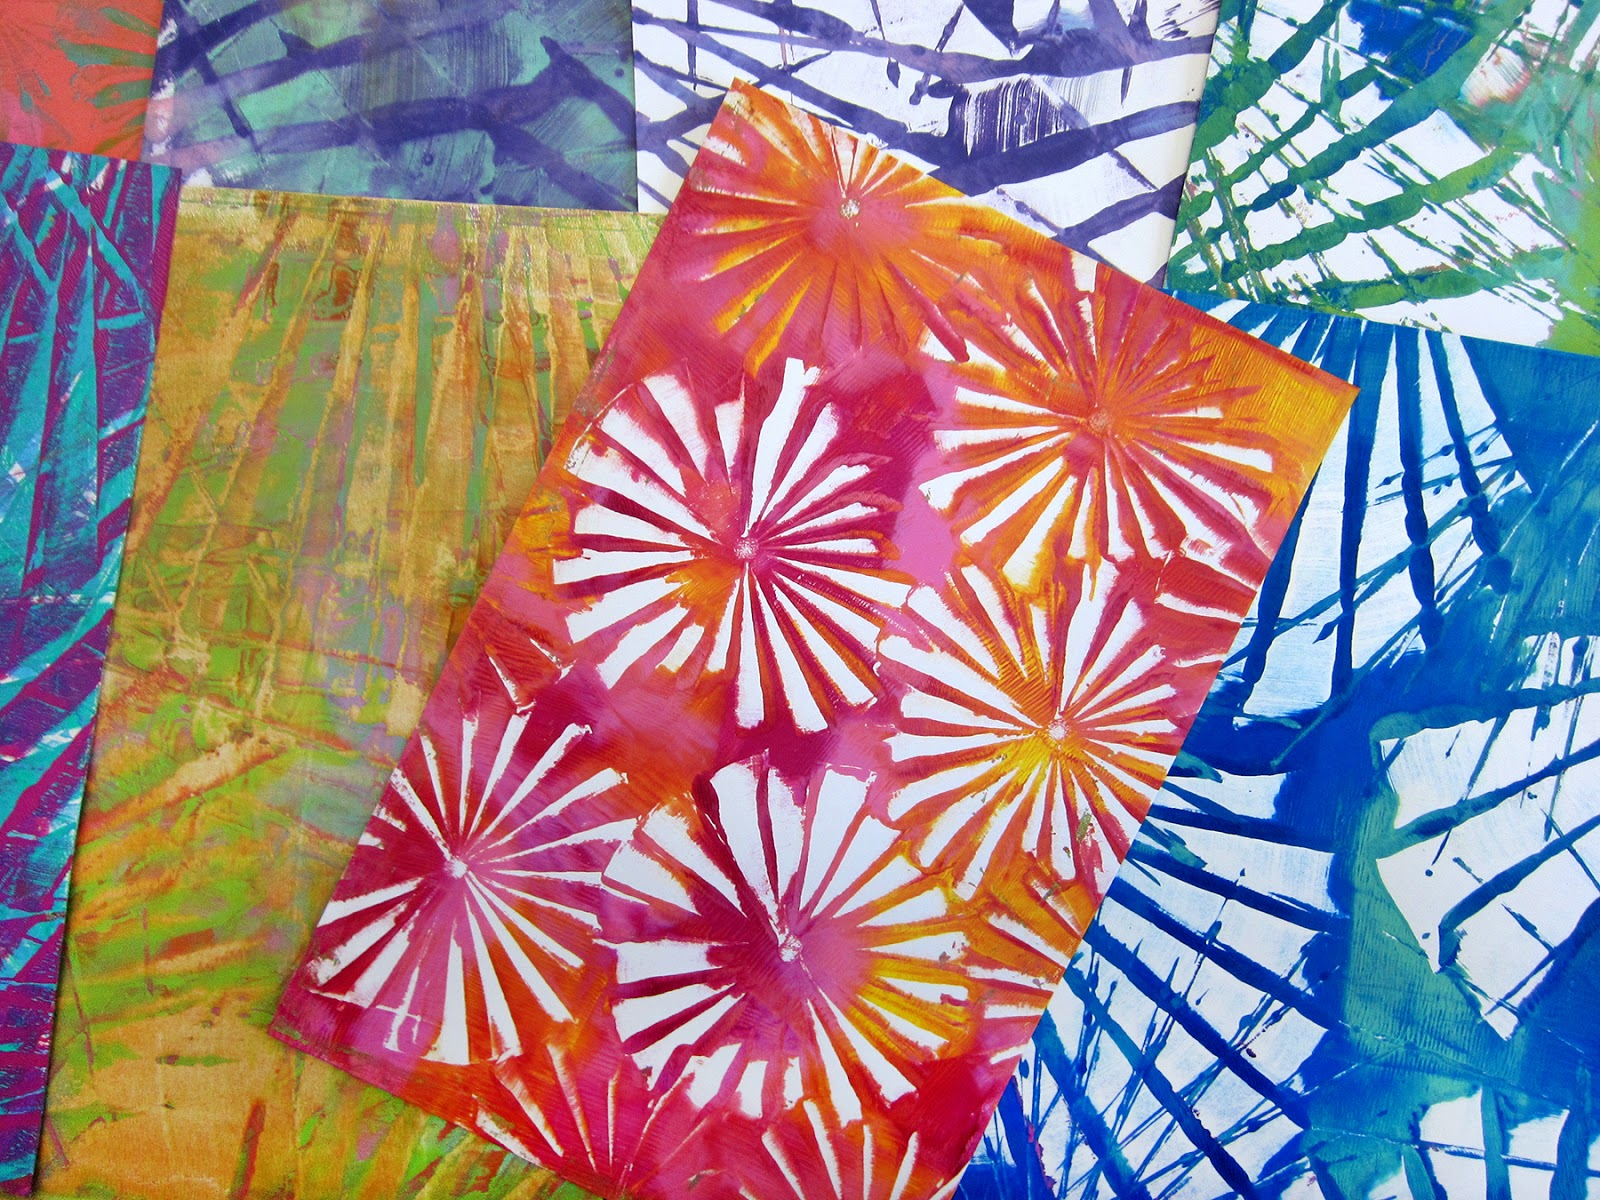 sc 1 st  Printing with Gelli Arts & Printing with Gelli Arts®: Gelli® Printing with Folded Paper!!